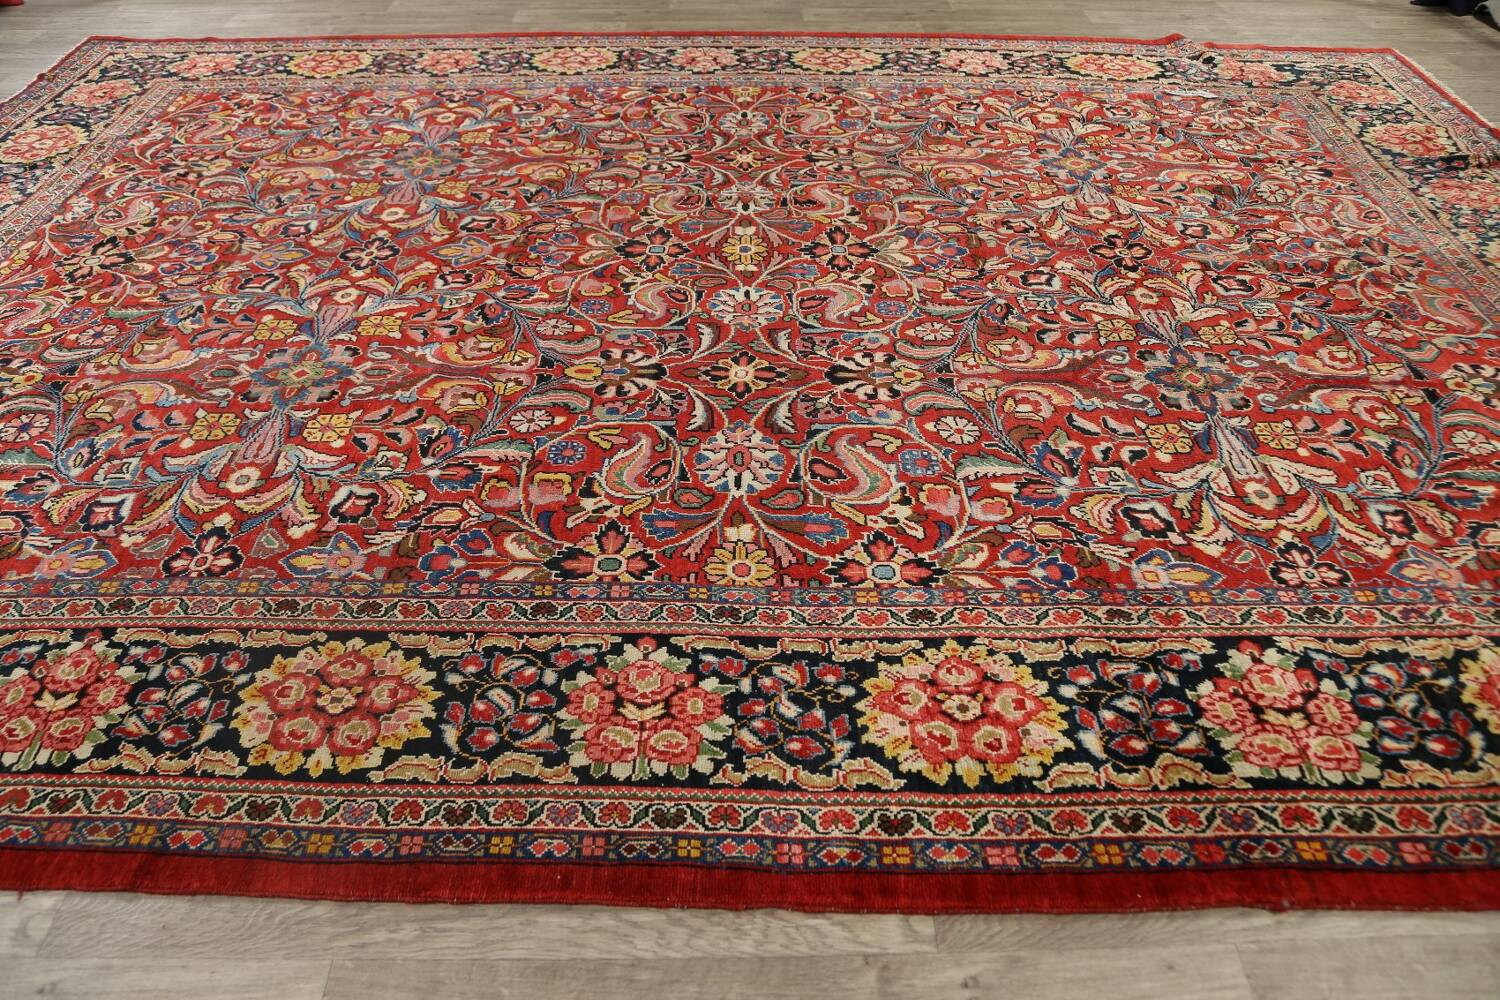 Antique Vegetable Dye Sultanabad Persian Area Rug 10x14 image 16